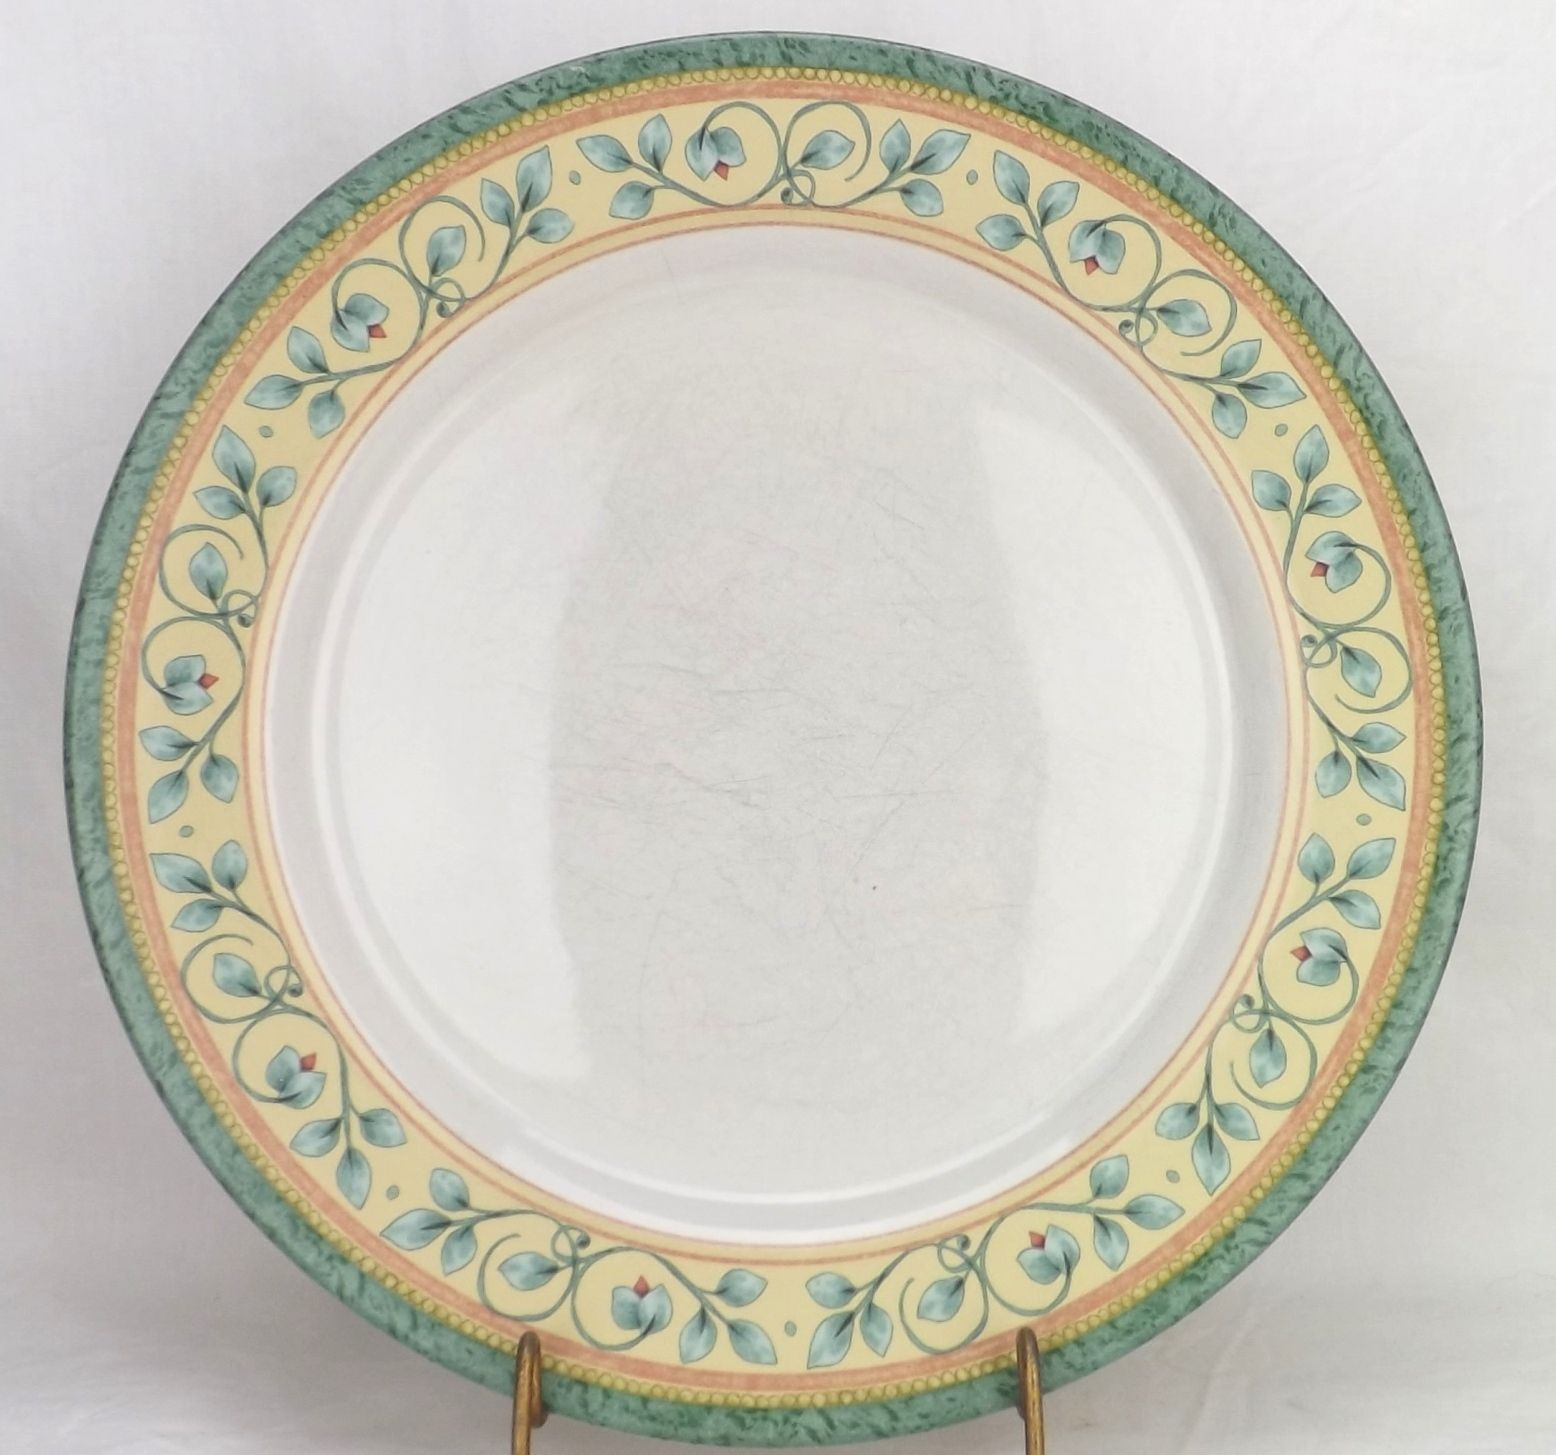 S l1600  sc 1 st  Bonanza & Pfaltzgraff Stoneware Dinner Plate French and 50 similar items